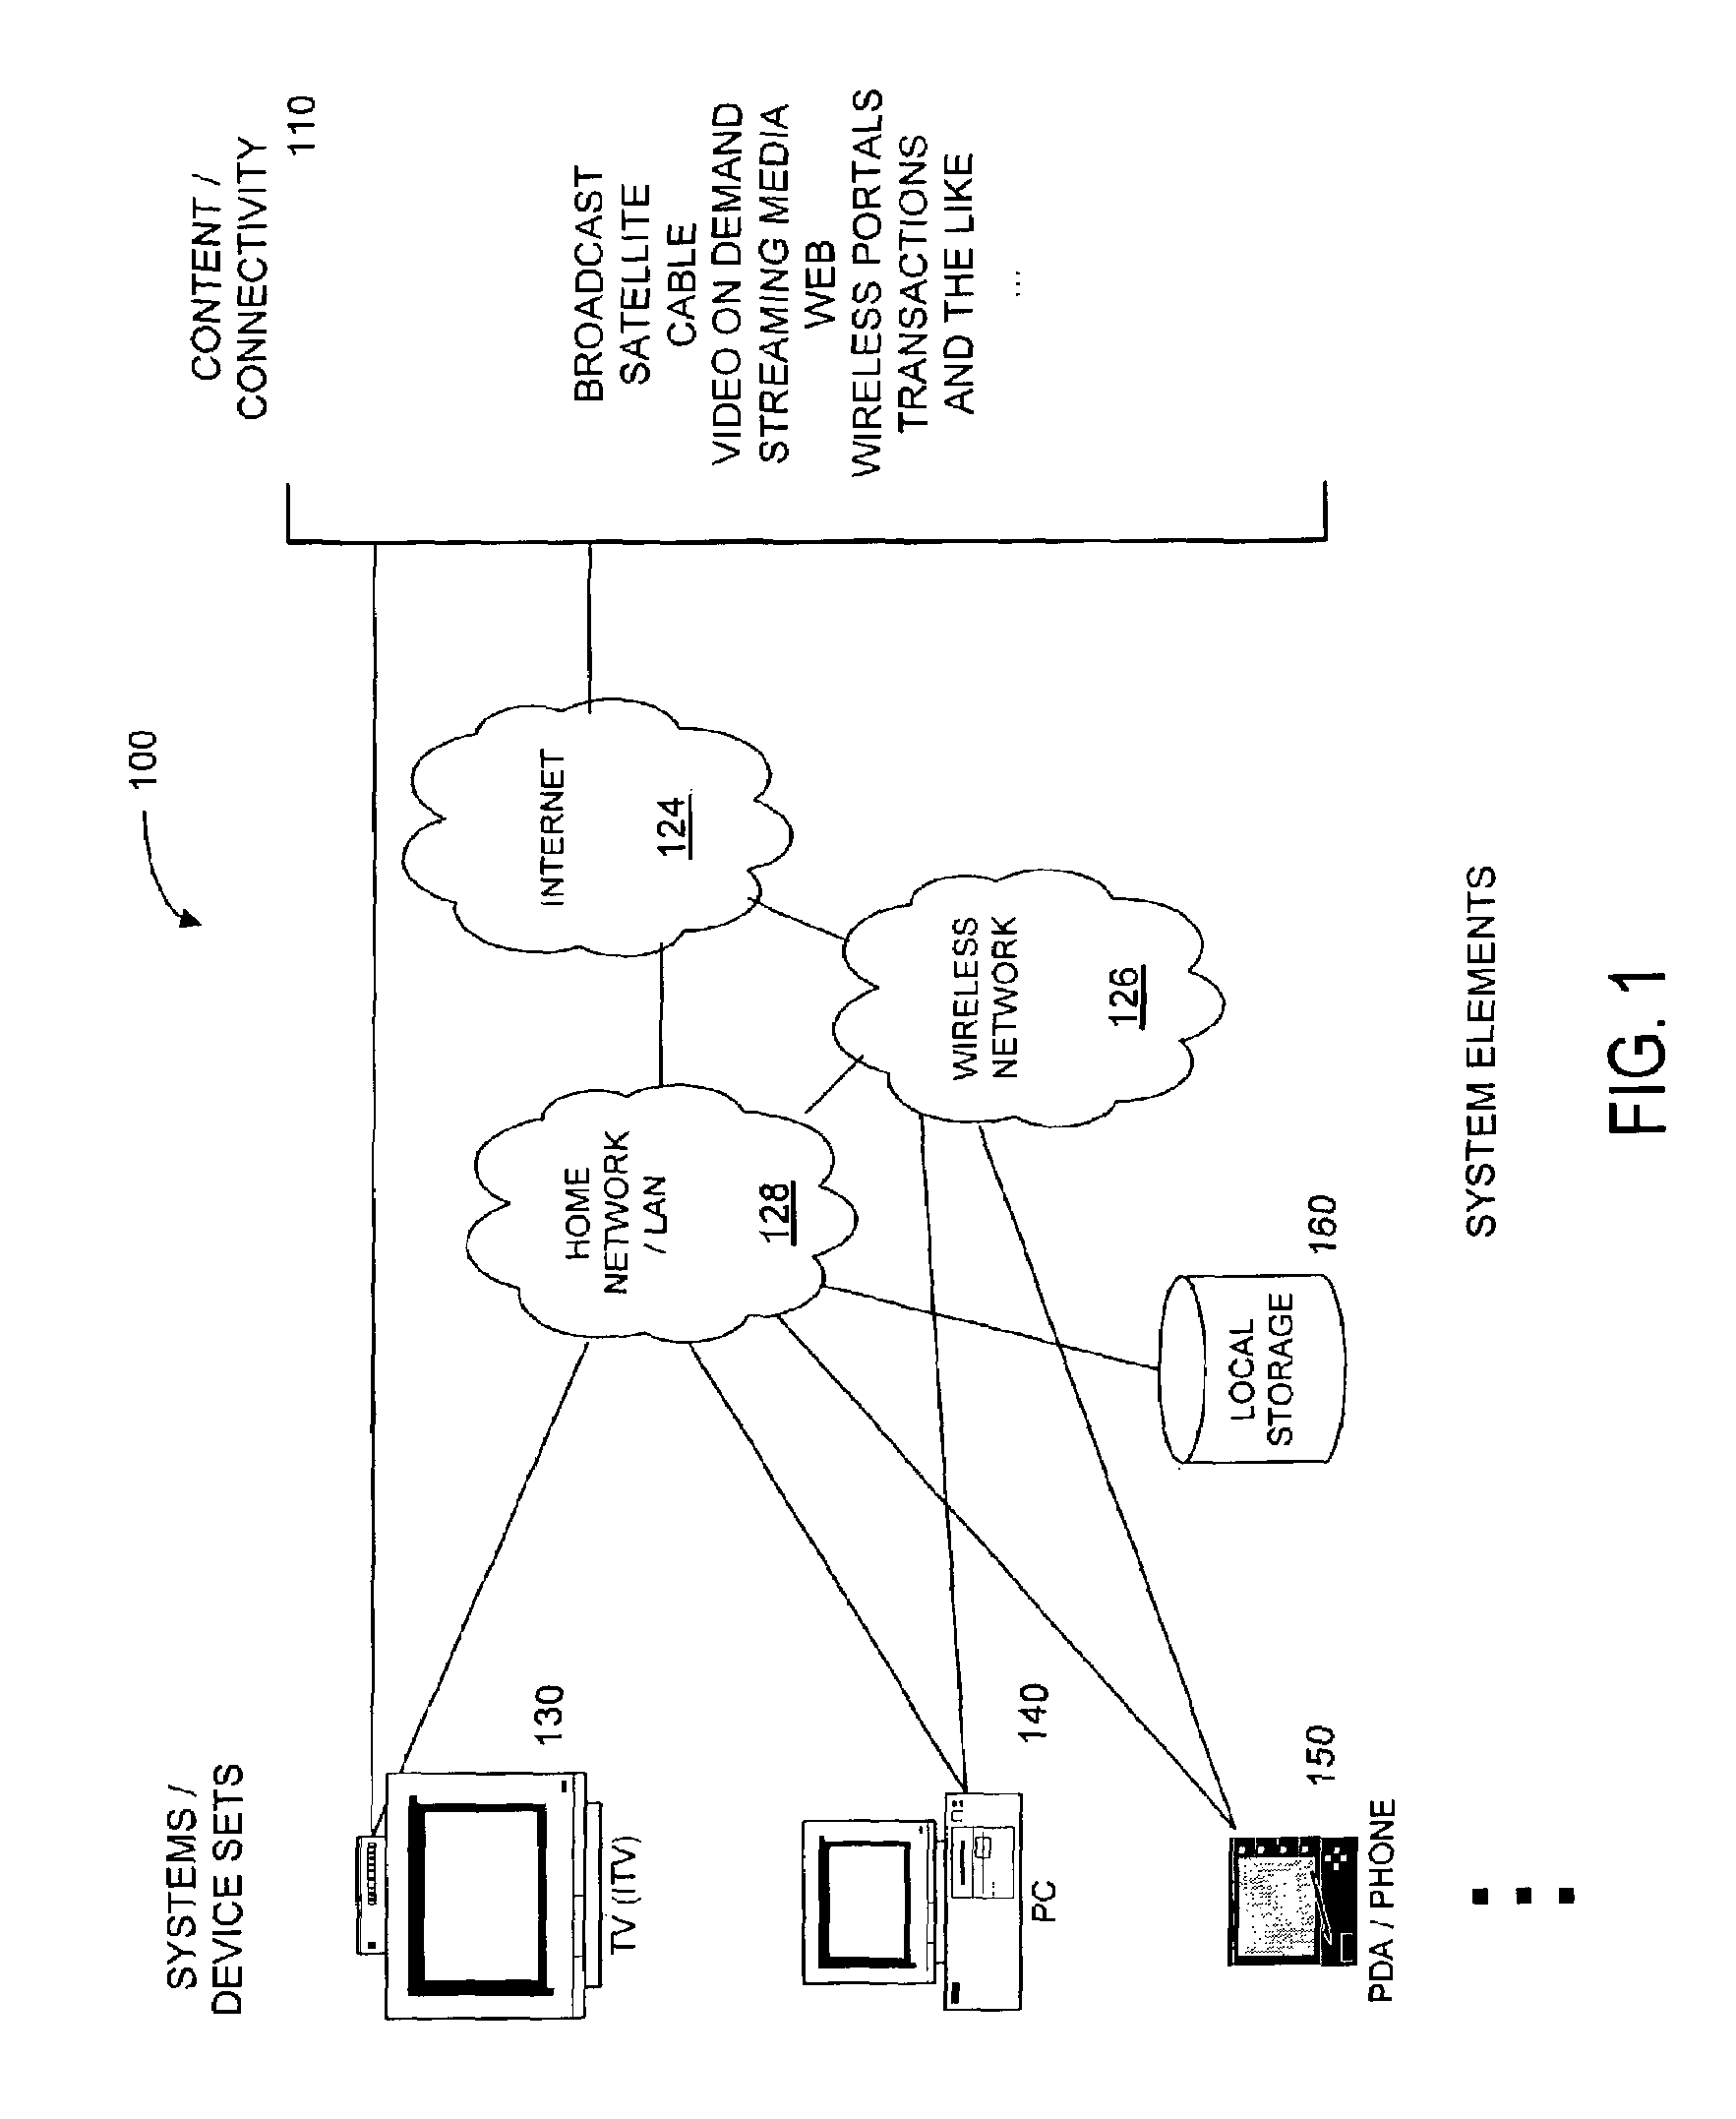 US8161172B2 - Method and apparatus for browsing using ... on